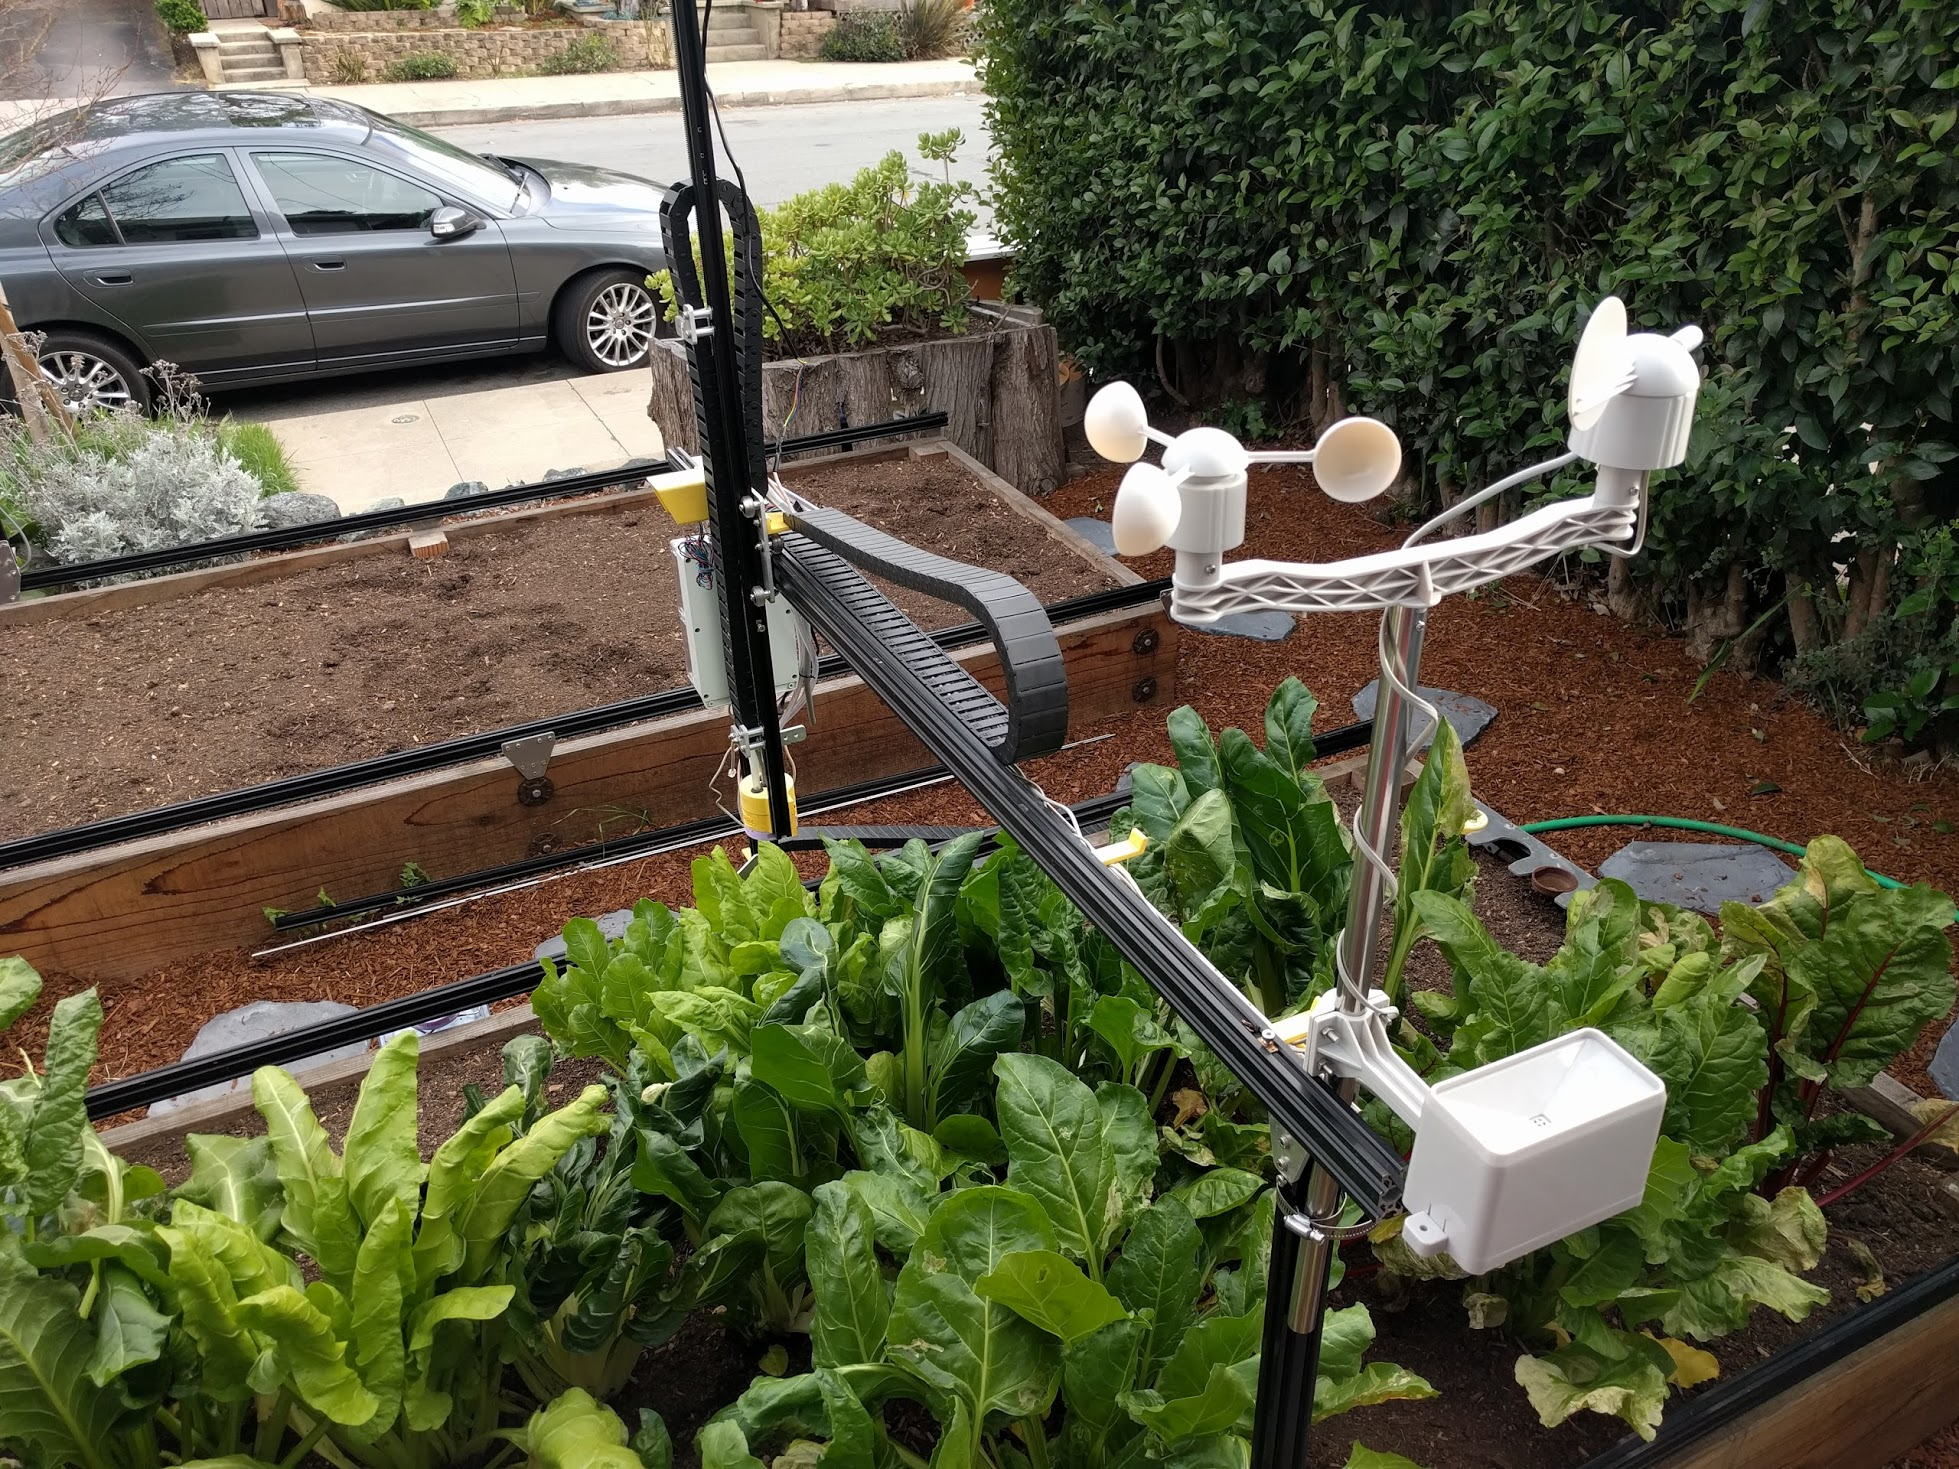 Farmbot, the world's first open-source fully autonomous precision farming machine